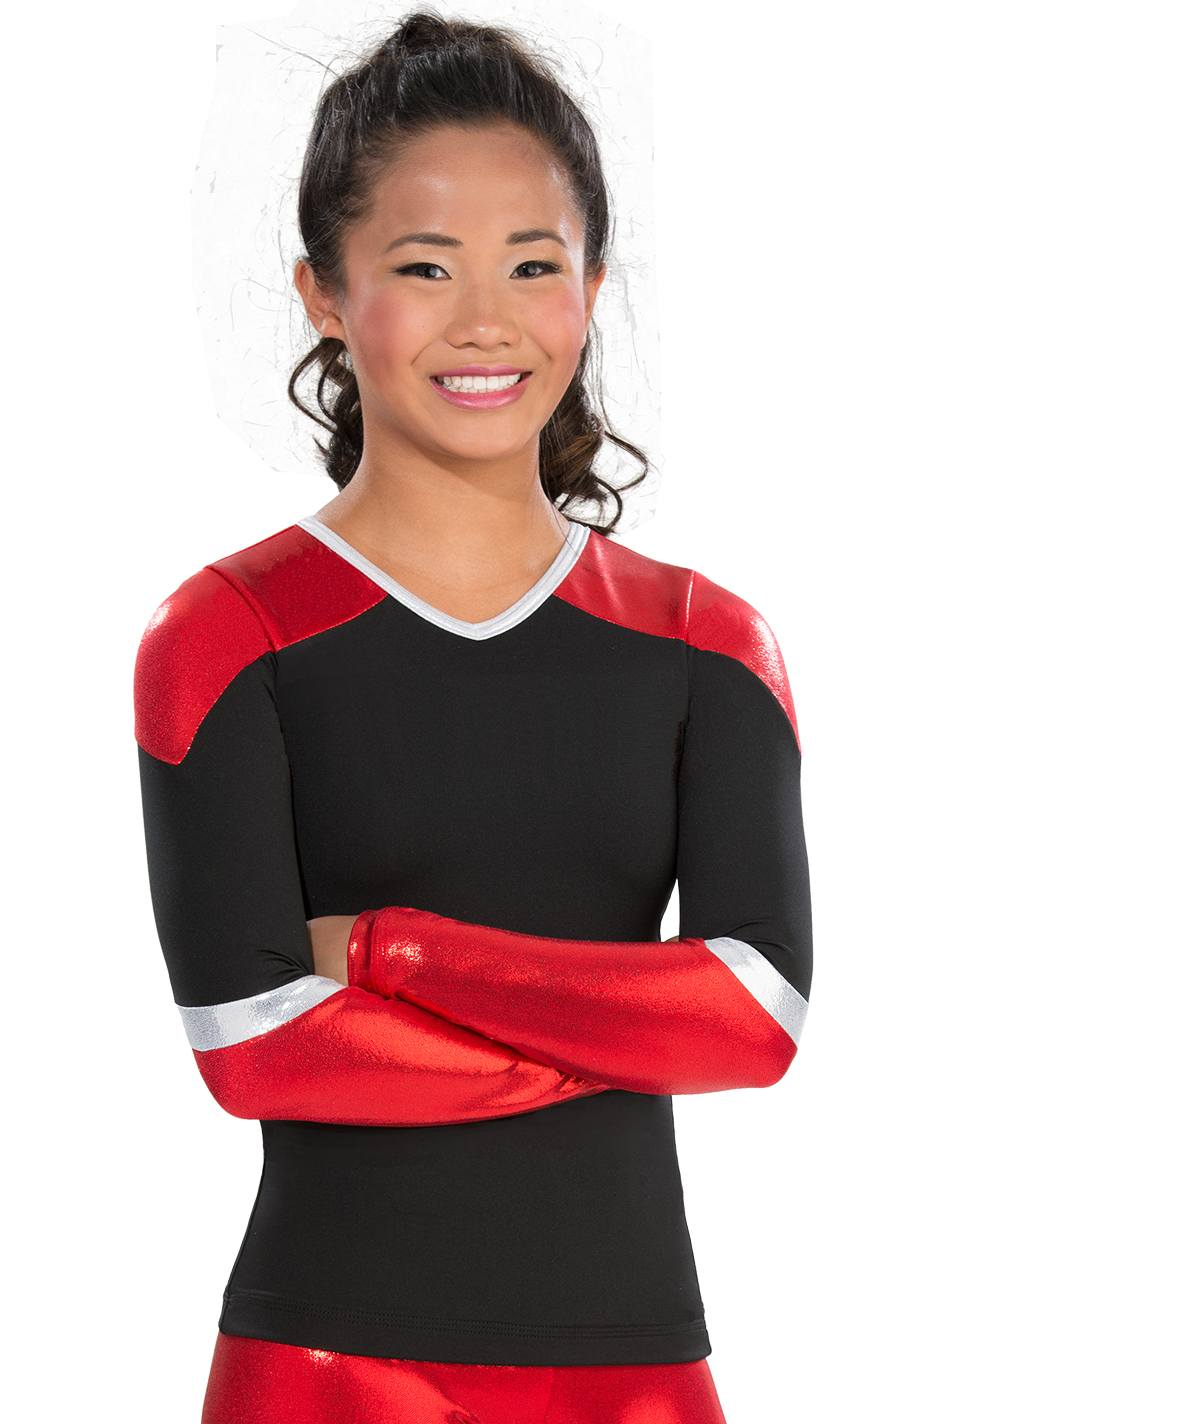 GK All Star Mystique Armor Uniform Top